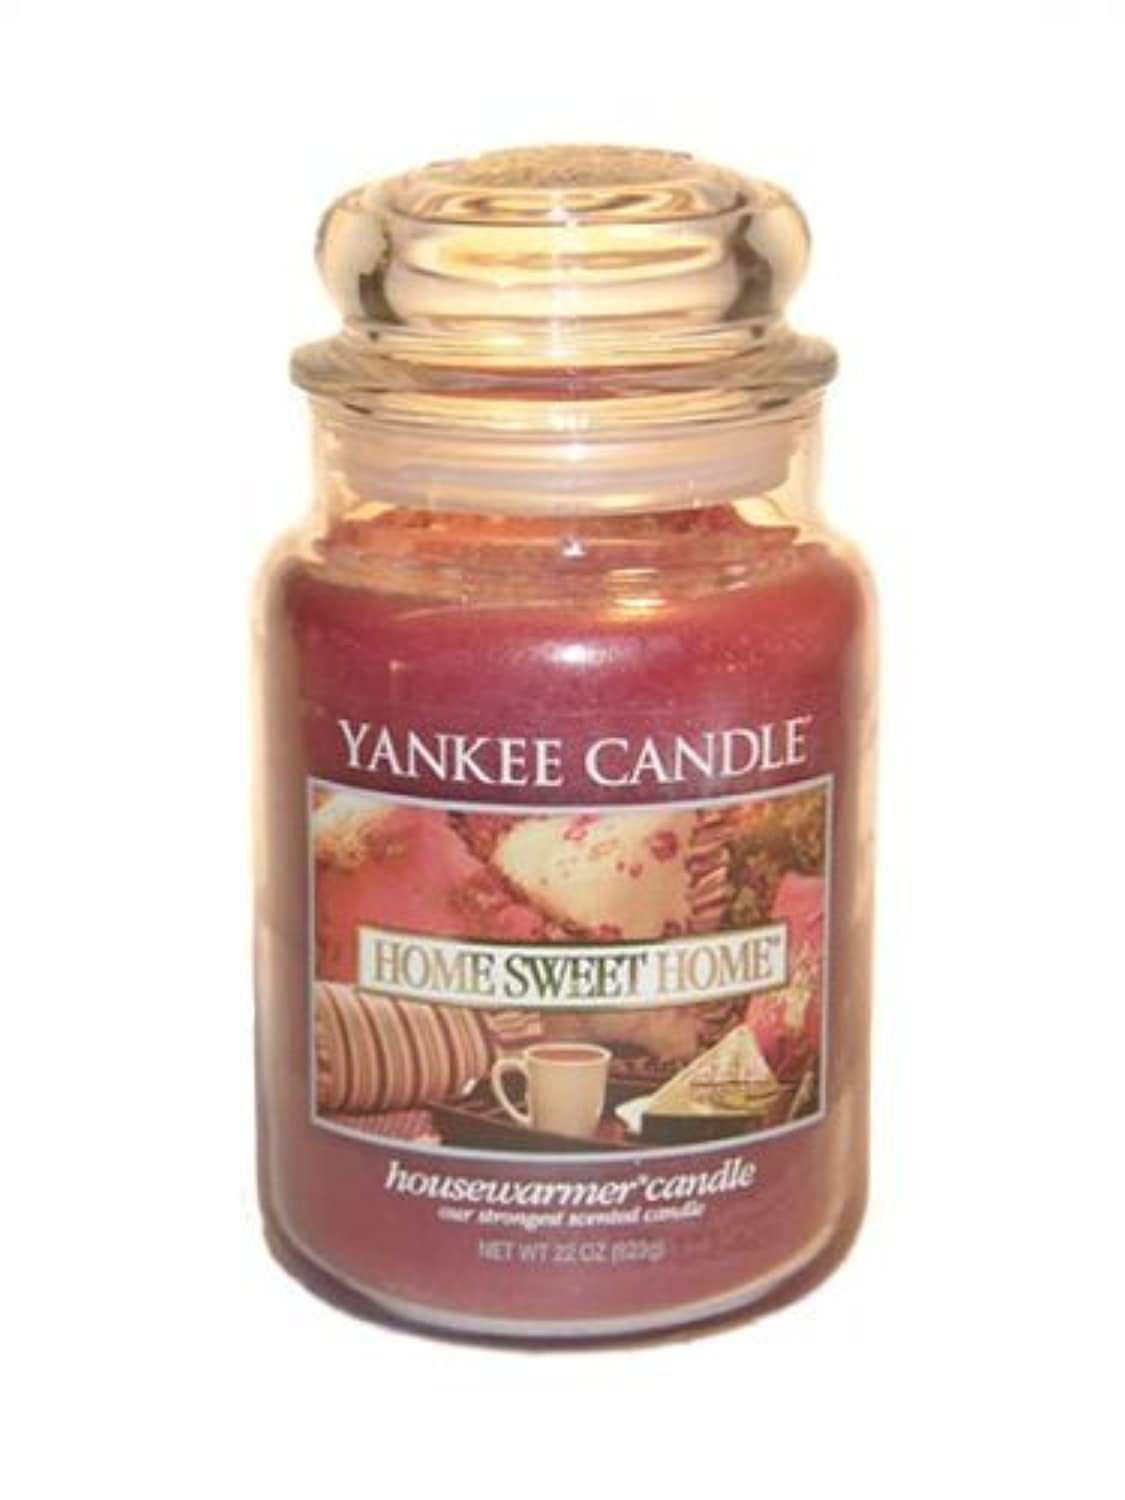 Yankee Candle Home Sweet Home Large Jar 22oz Candle by Amazon source [並行輸入品]